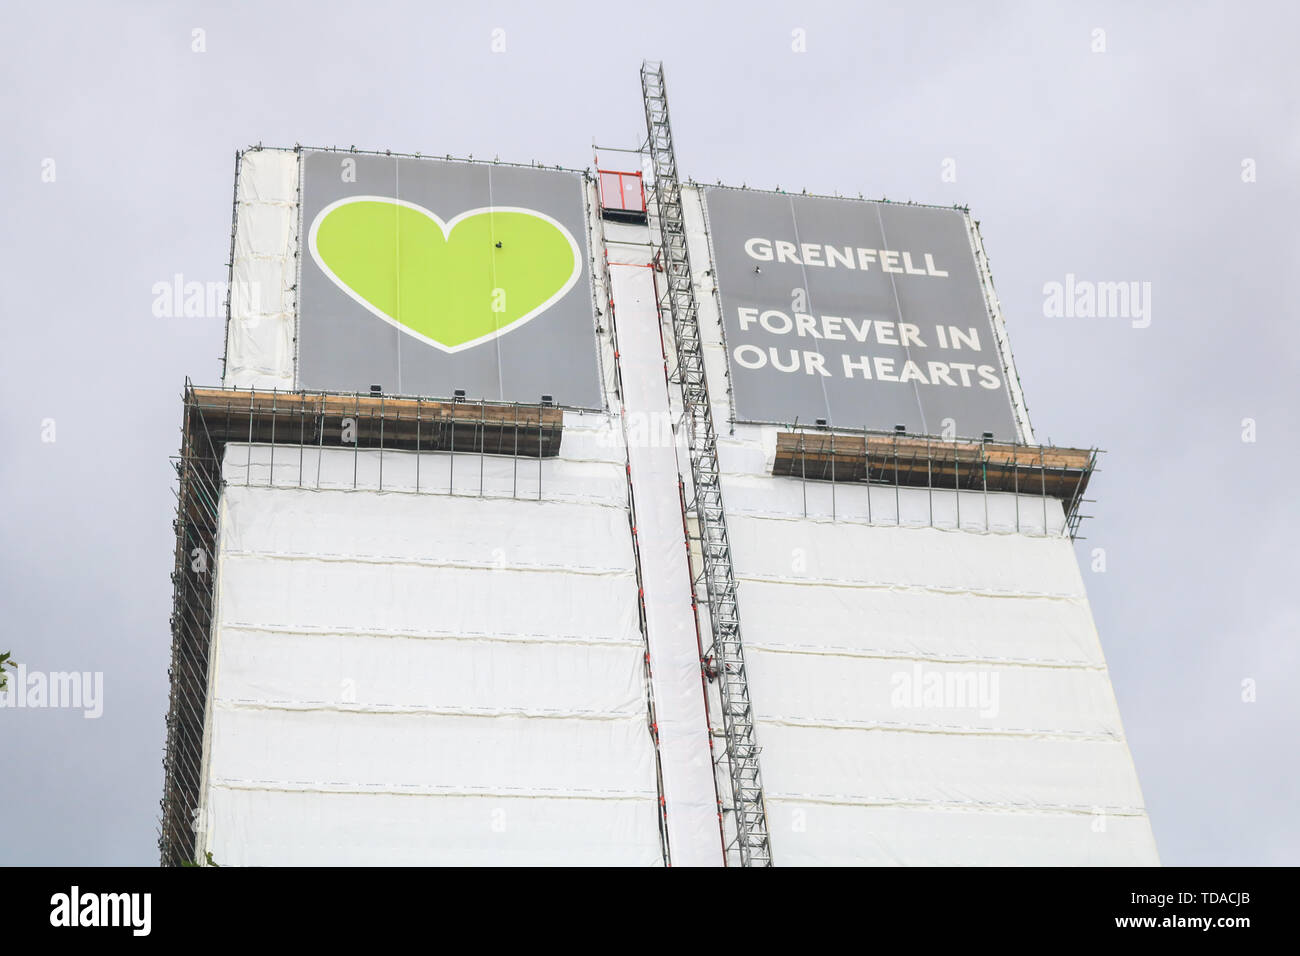 London, UK. 13th June, 2019. The Grenfell tower covered in white tarpualin wirth a message 'Grenfell Forever in Our Hearts on the second anniversary of the devastating inferno fire which in the residential tower block in West London Credit: amer ghazzal/Alamy Live News - Stock Image